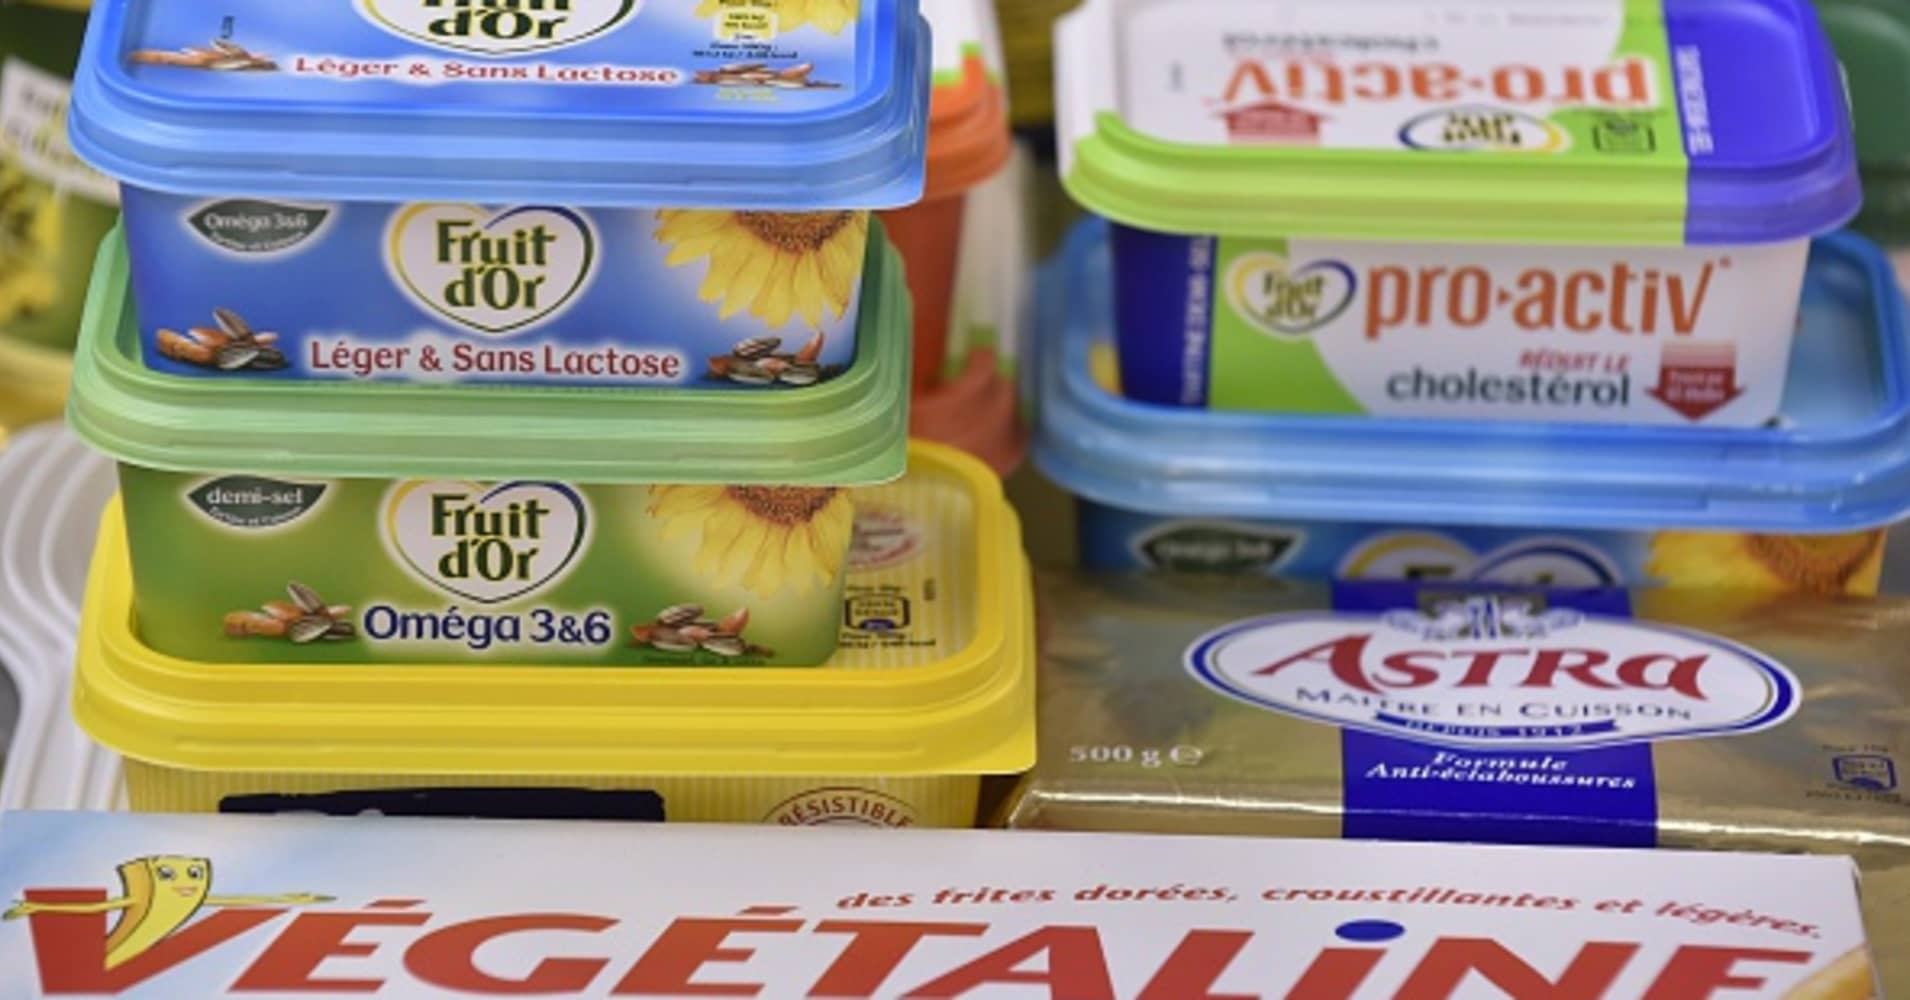 Consumer goods giant Unilever sees accelerated sales growth